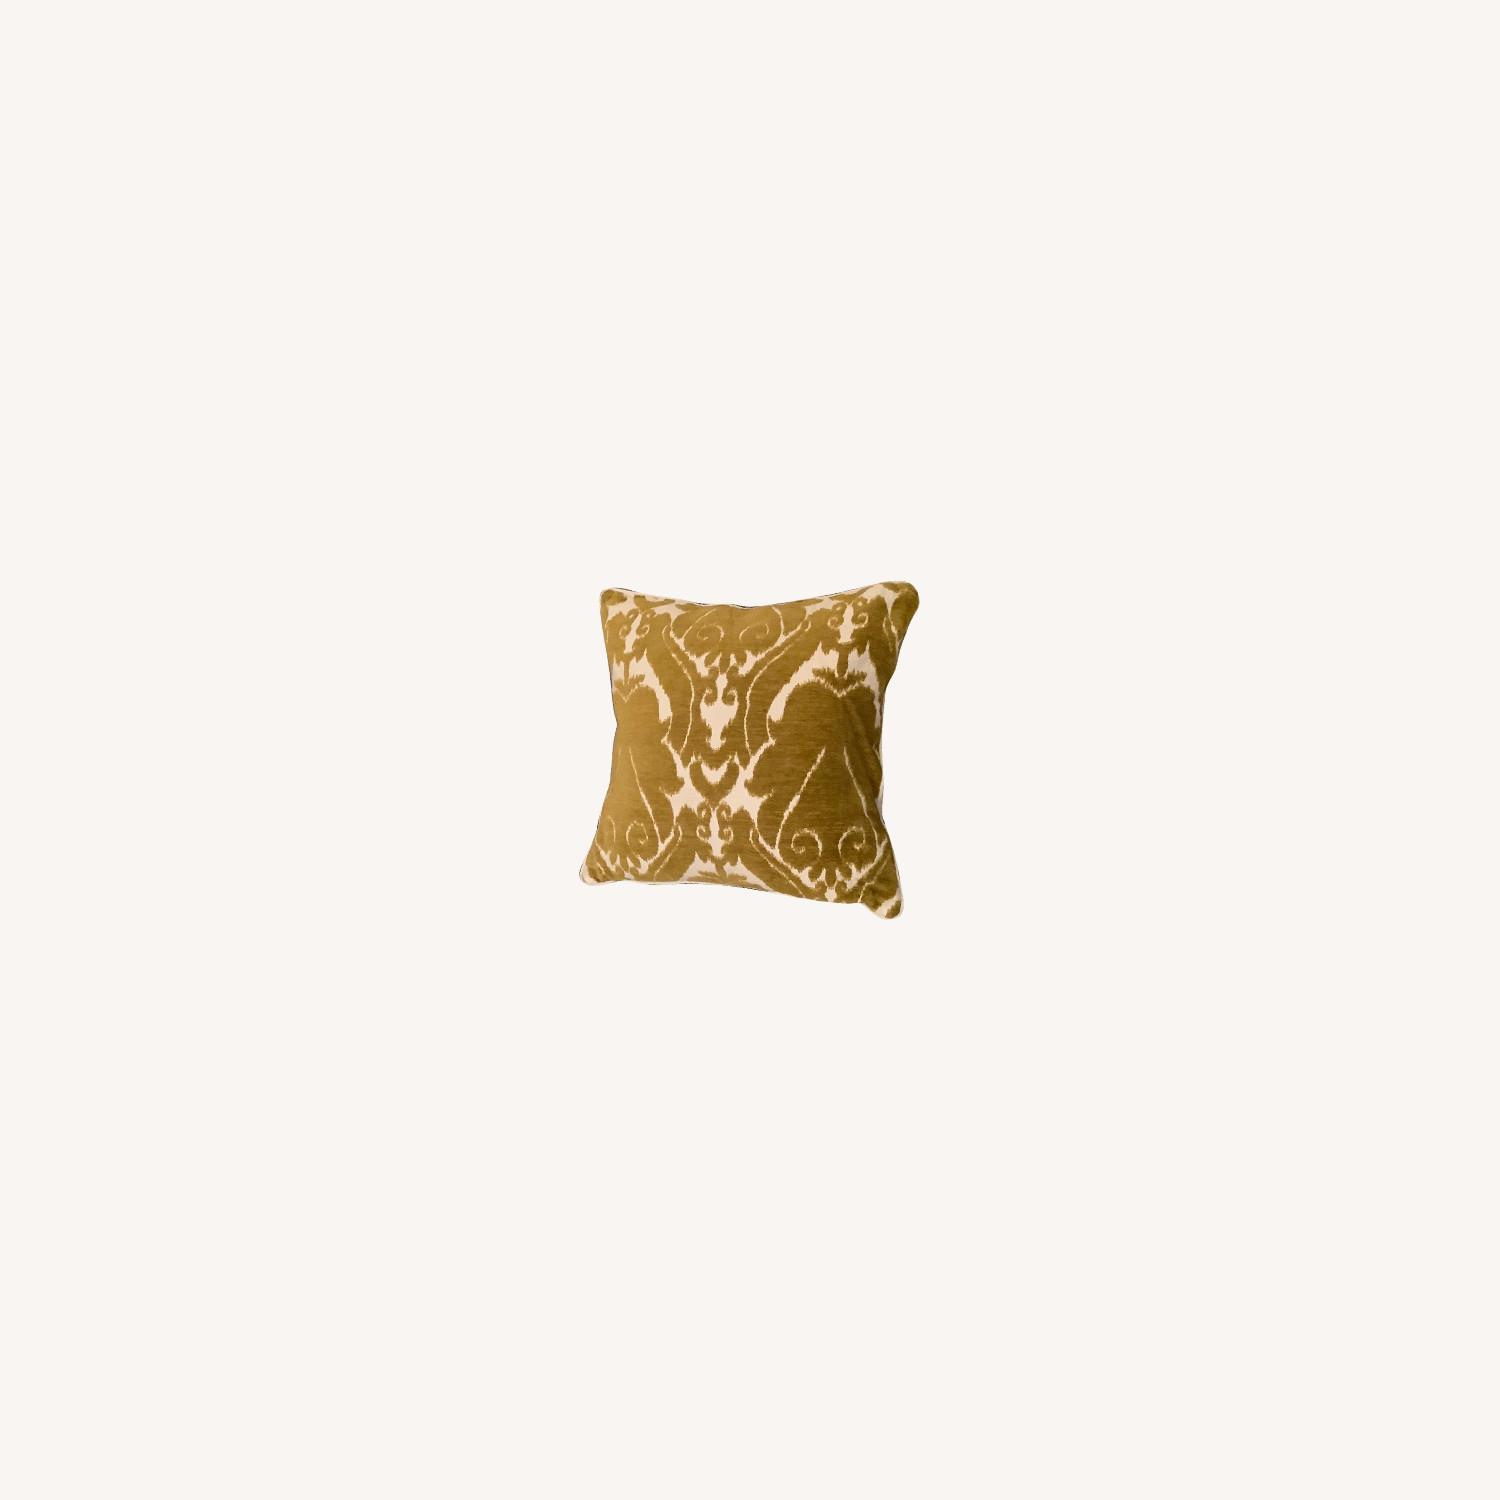 Jacquard Woven Chenille Throw Pillow - image-0